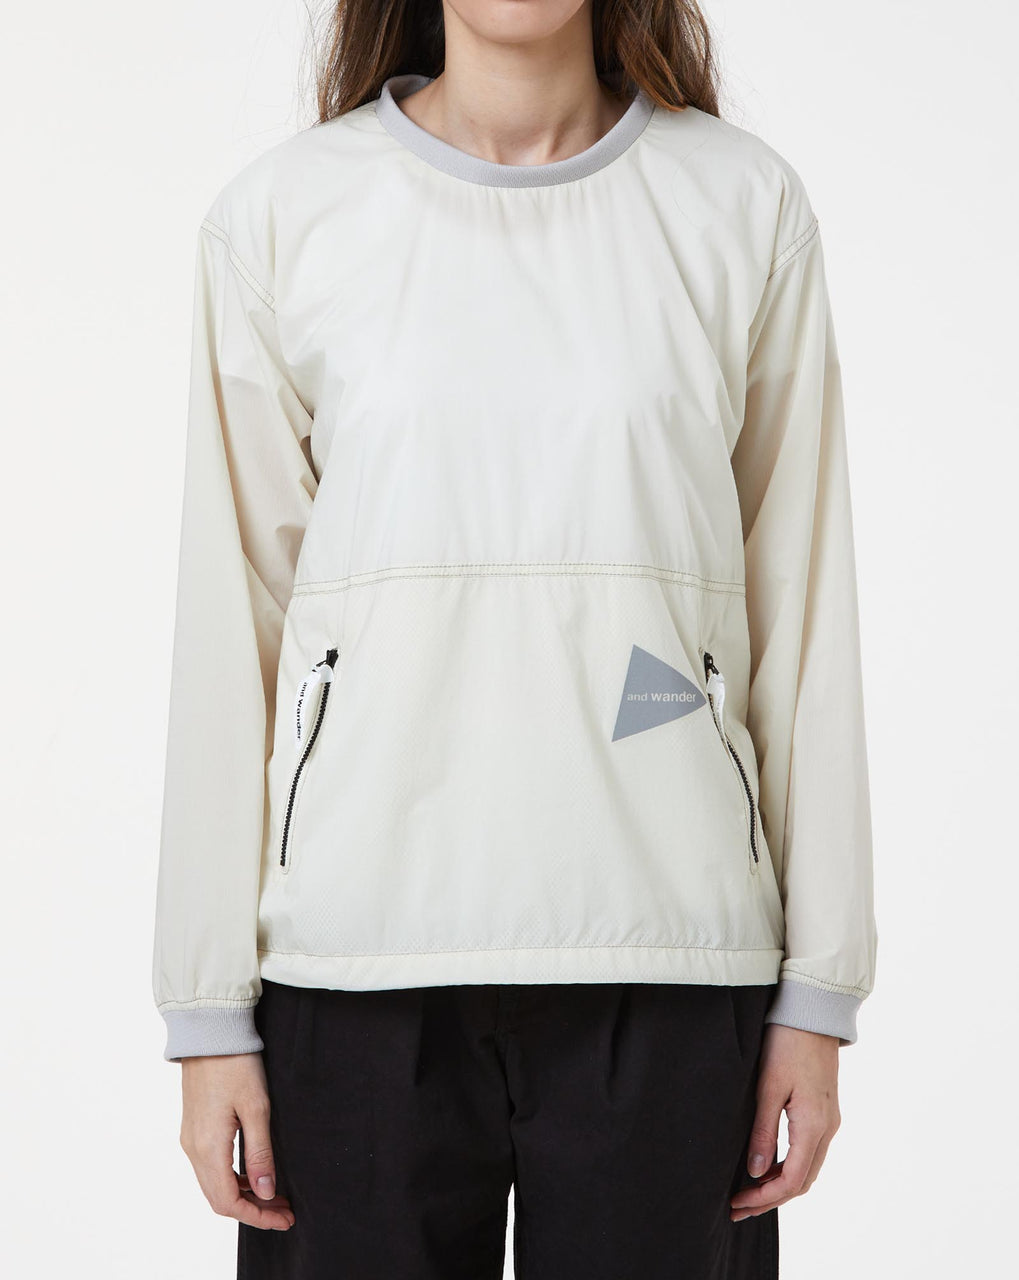 and Wander Pertex Wind Long Sleeve T (Off White)